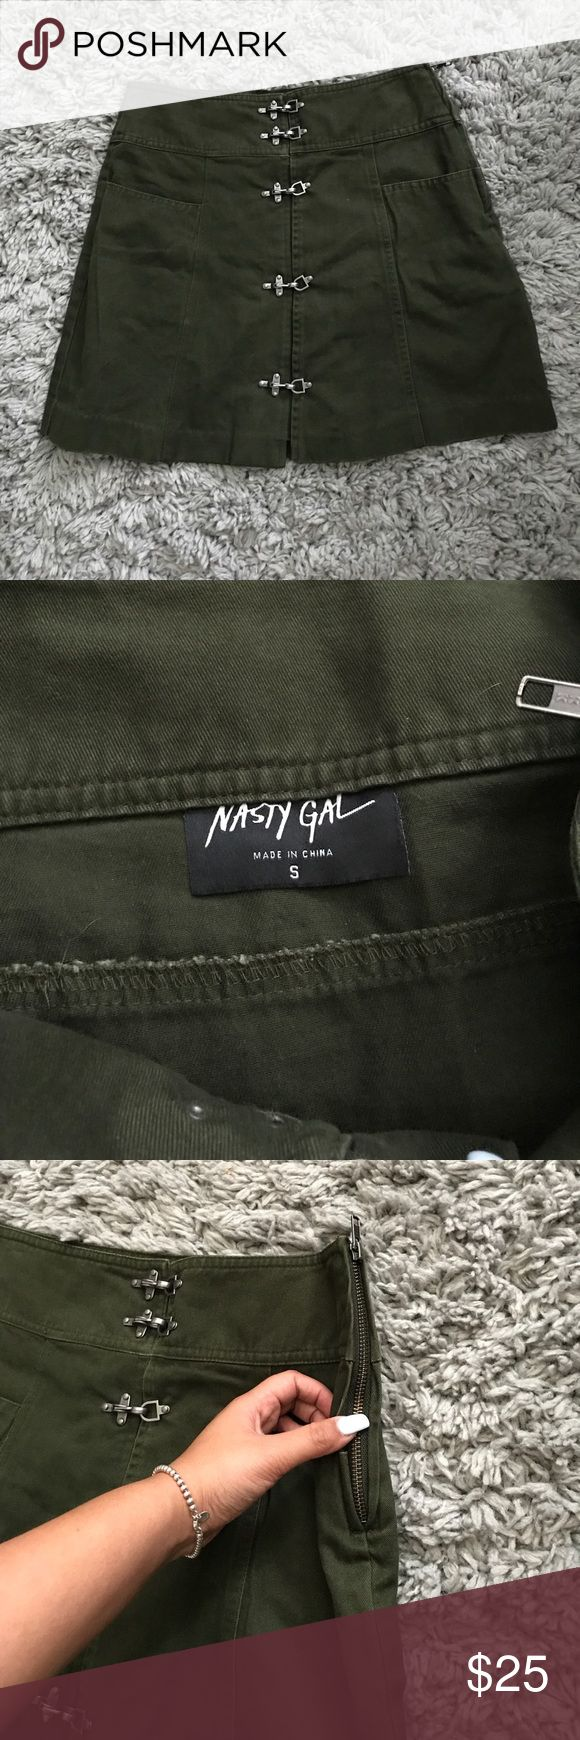 """Nasty Gal skirt Reminds me of a military skirt, the color, the front clasps, and the pockets. Size small best fit up to 25"""". Brand new without tags never worn. Nasty Gal Skirts Mini"""